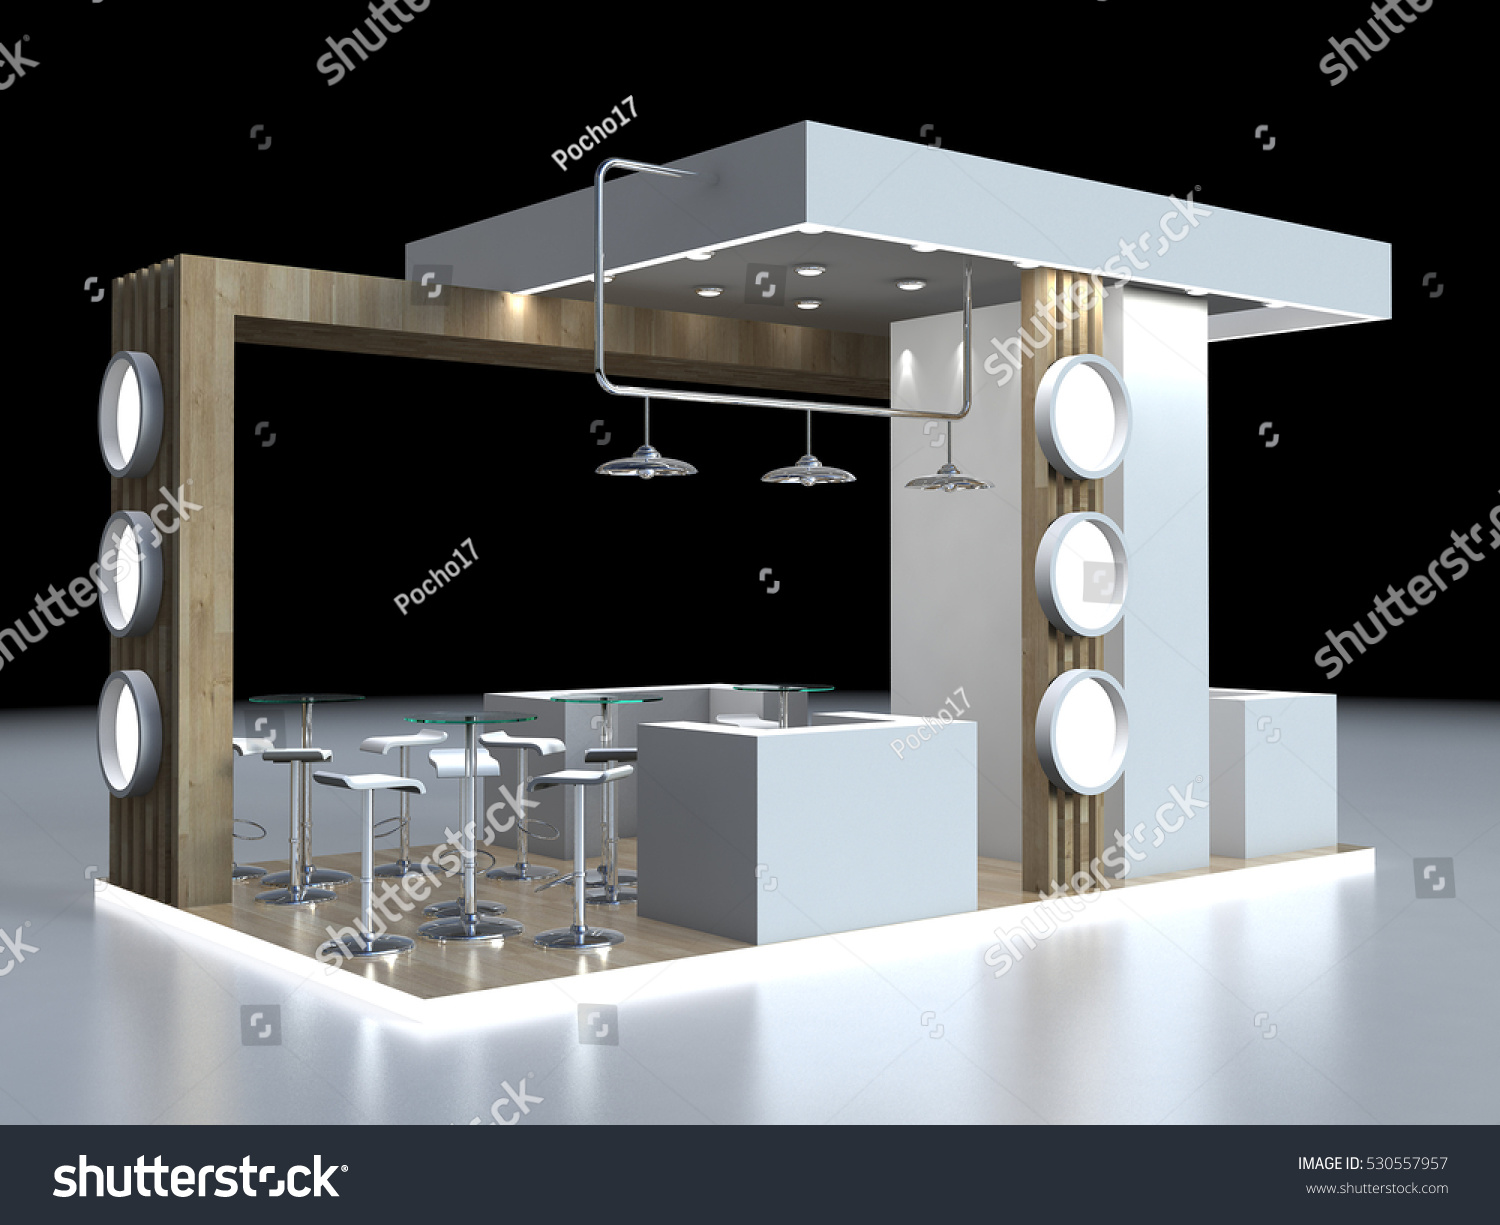 D Rendering Exhibition : Exhibition stand d rendering wood view stock illustration